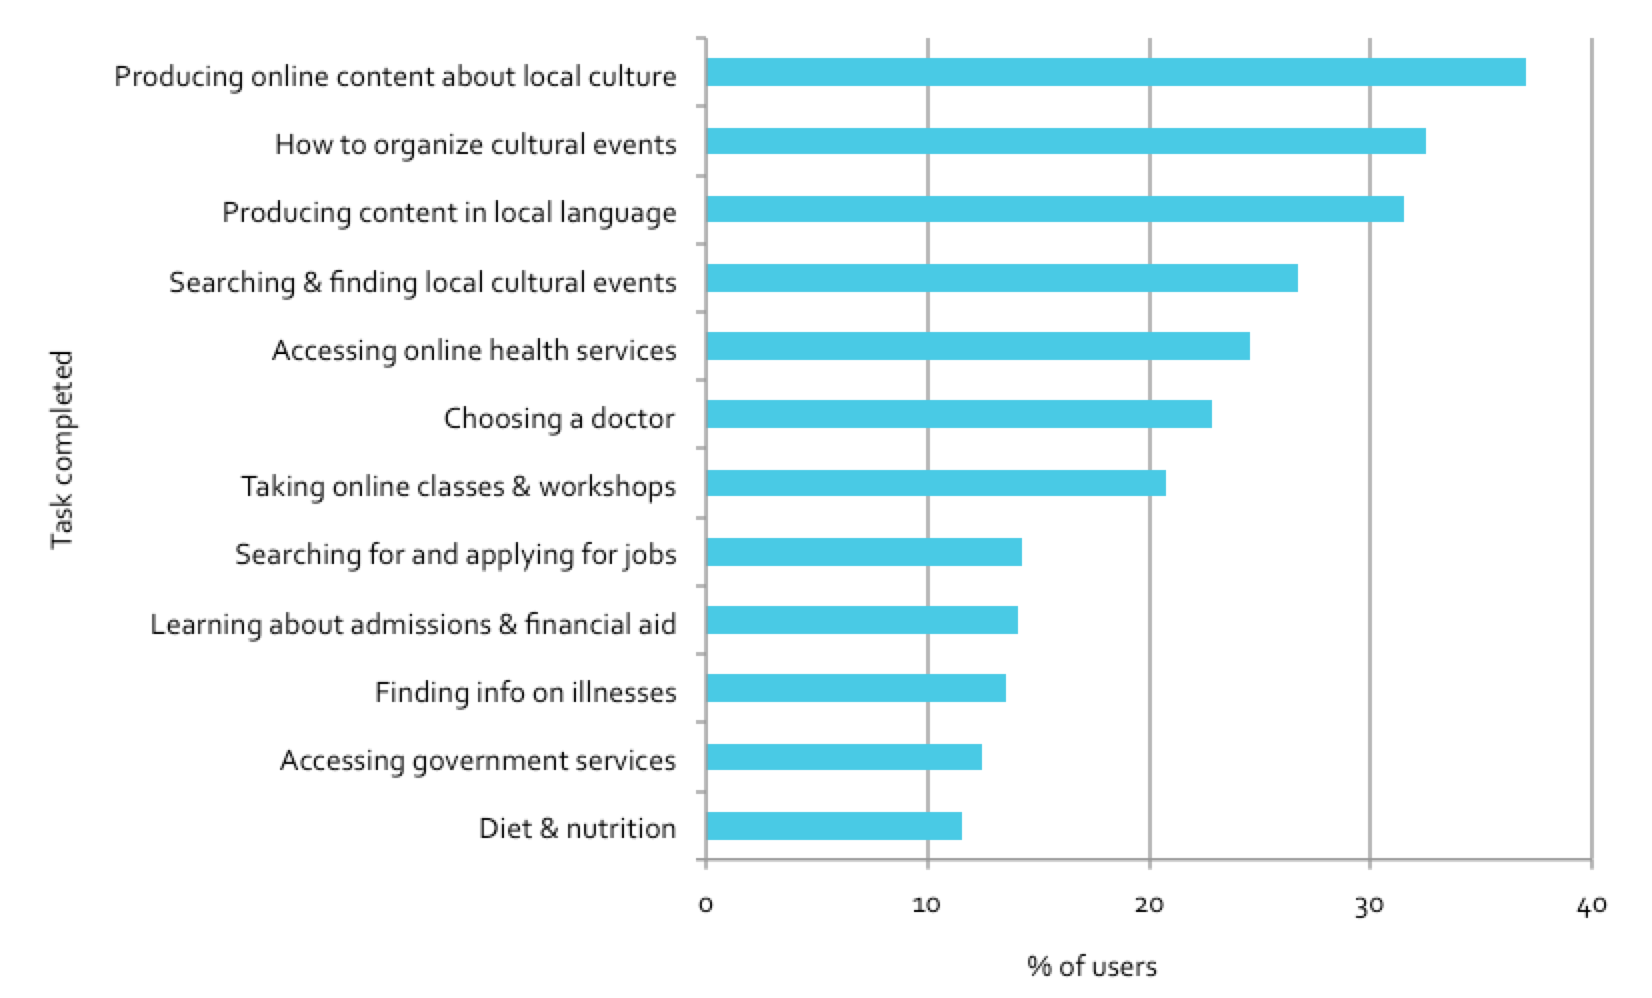 Figure 5.46: Users identifying email/social networking as most important resource to complete task